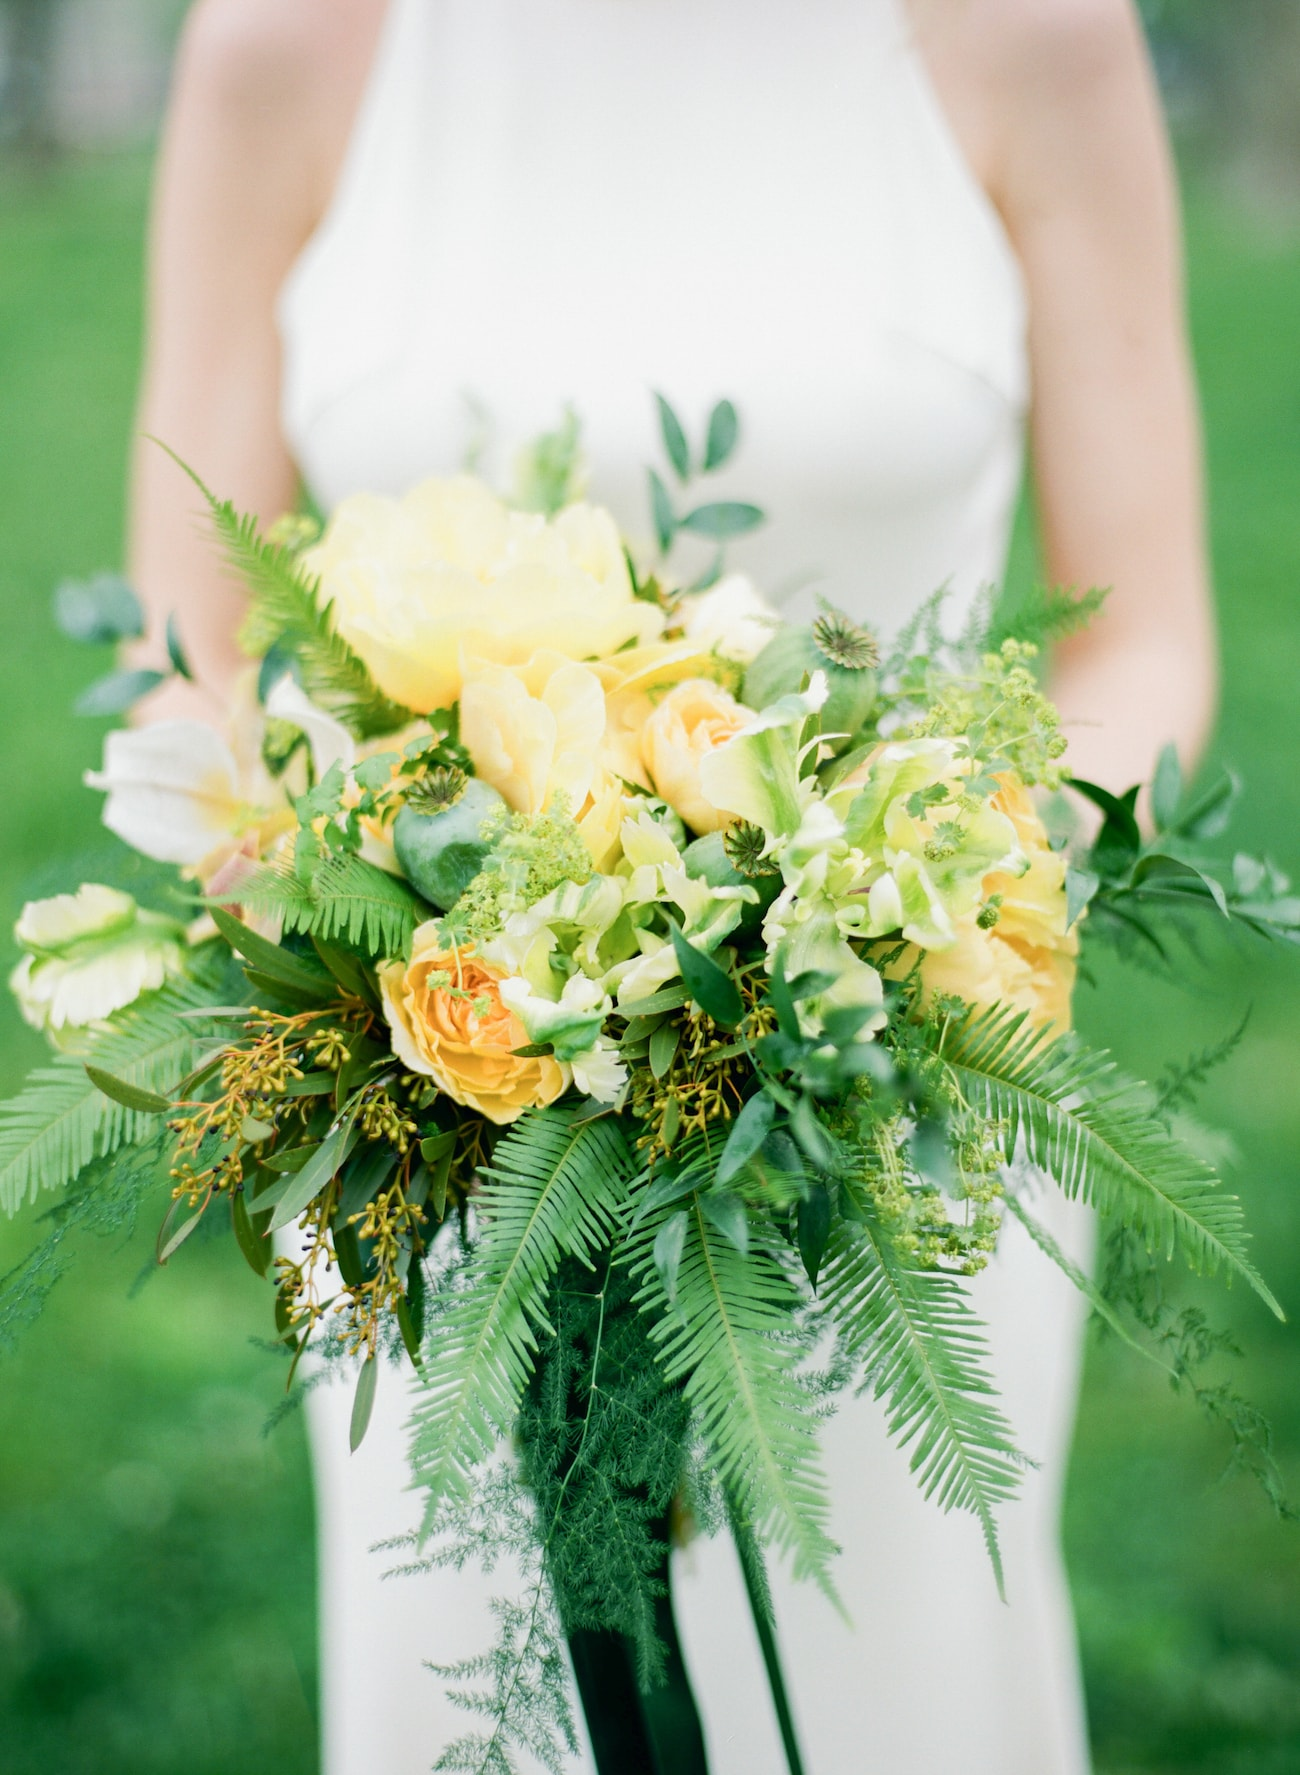 Tropical Yellow and Green Bouquet with Ferns | Credit: Ruth Eileen Photography